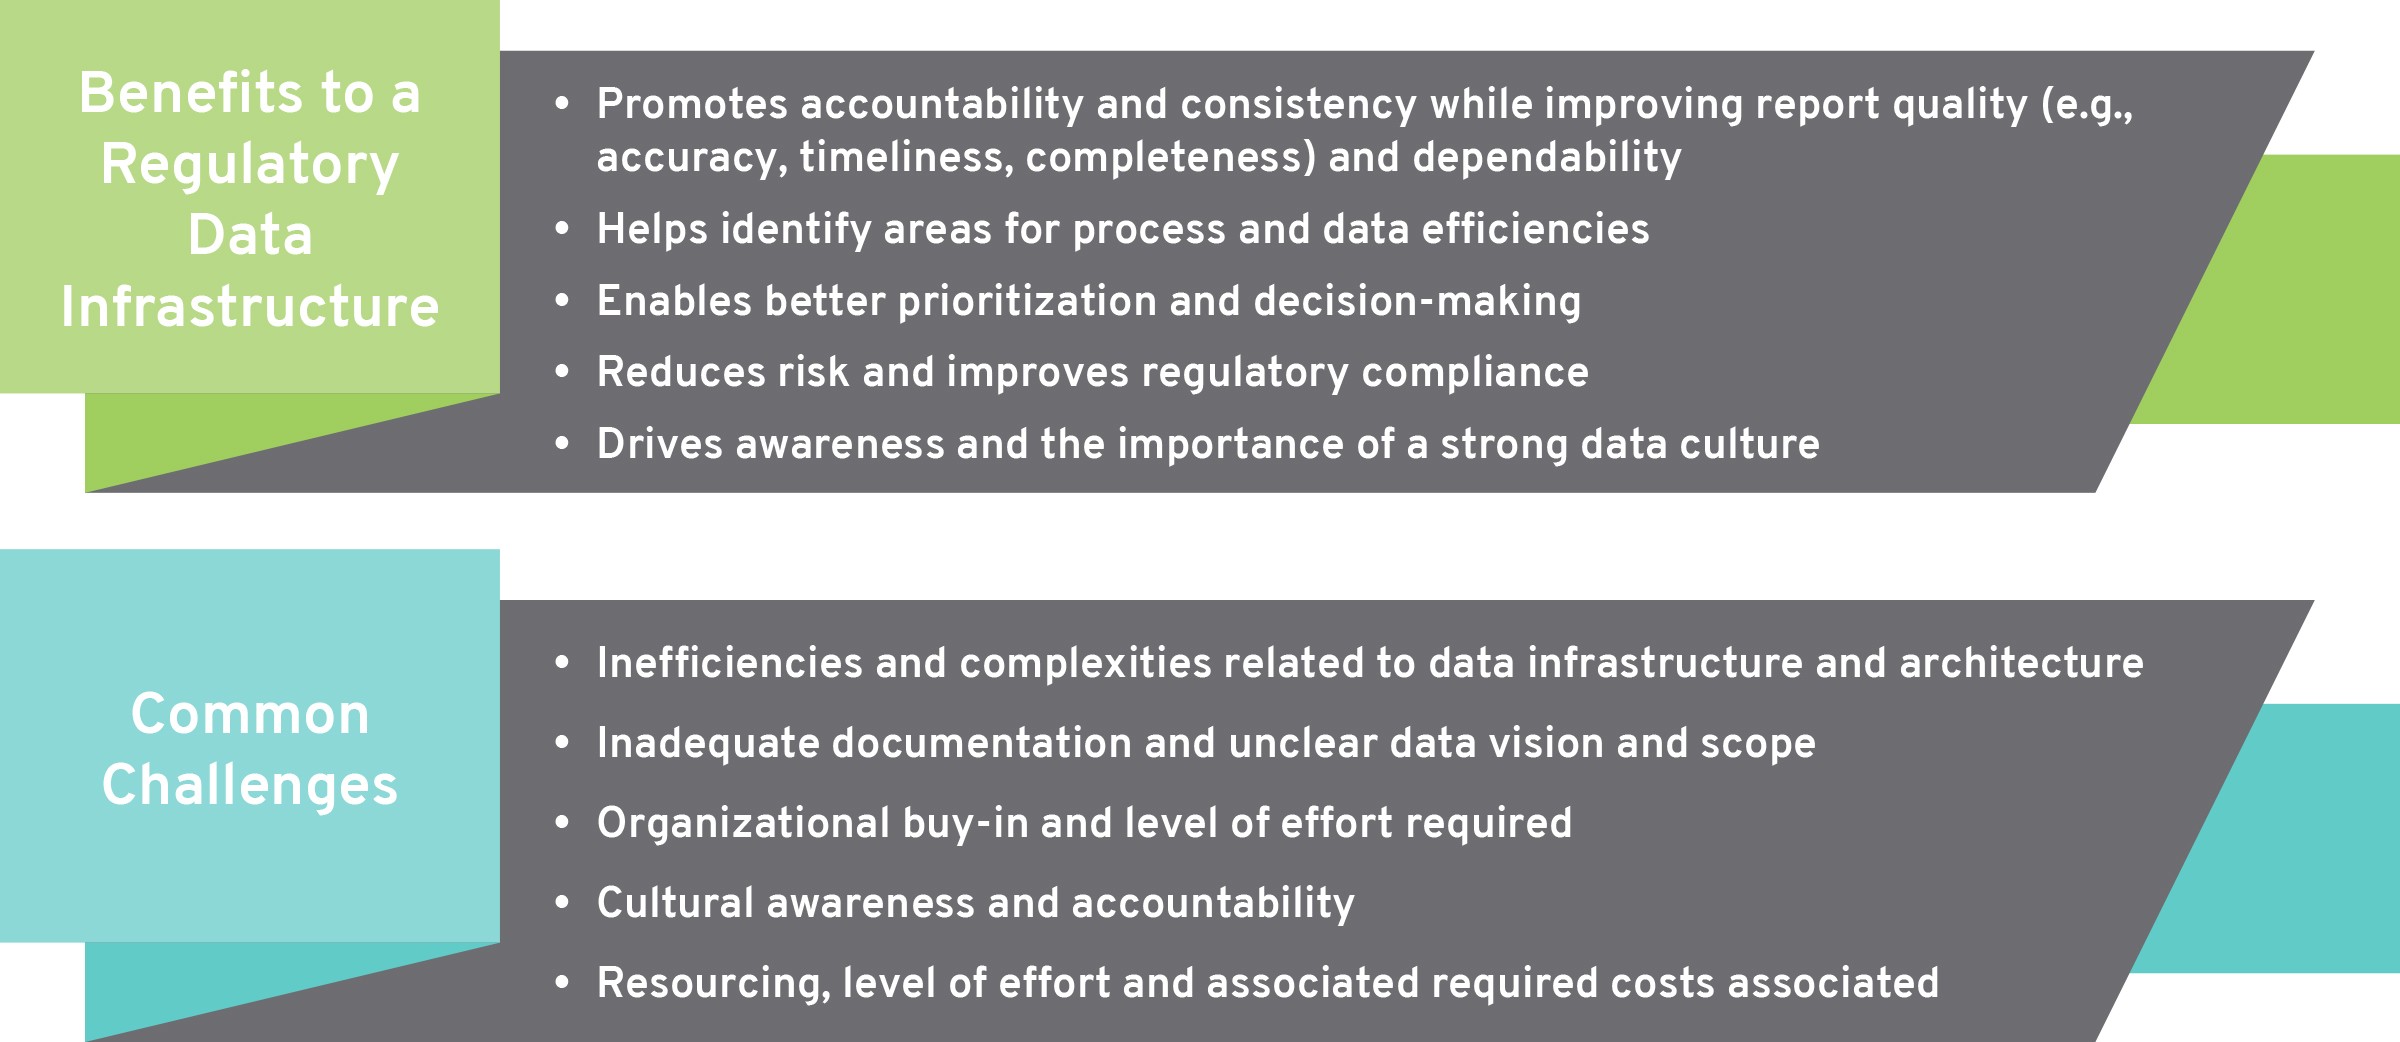 Benefits & Challenges to a Regulatory Data Infrastructure